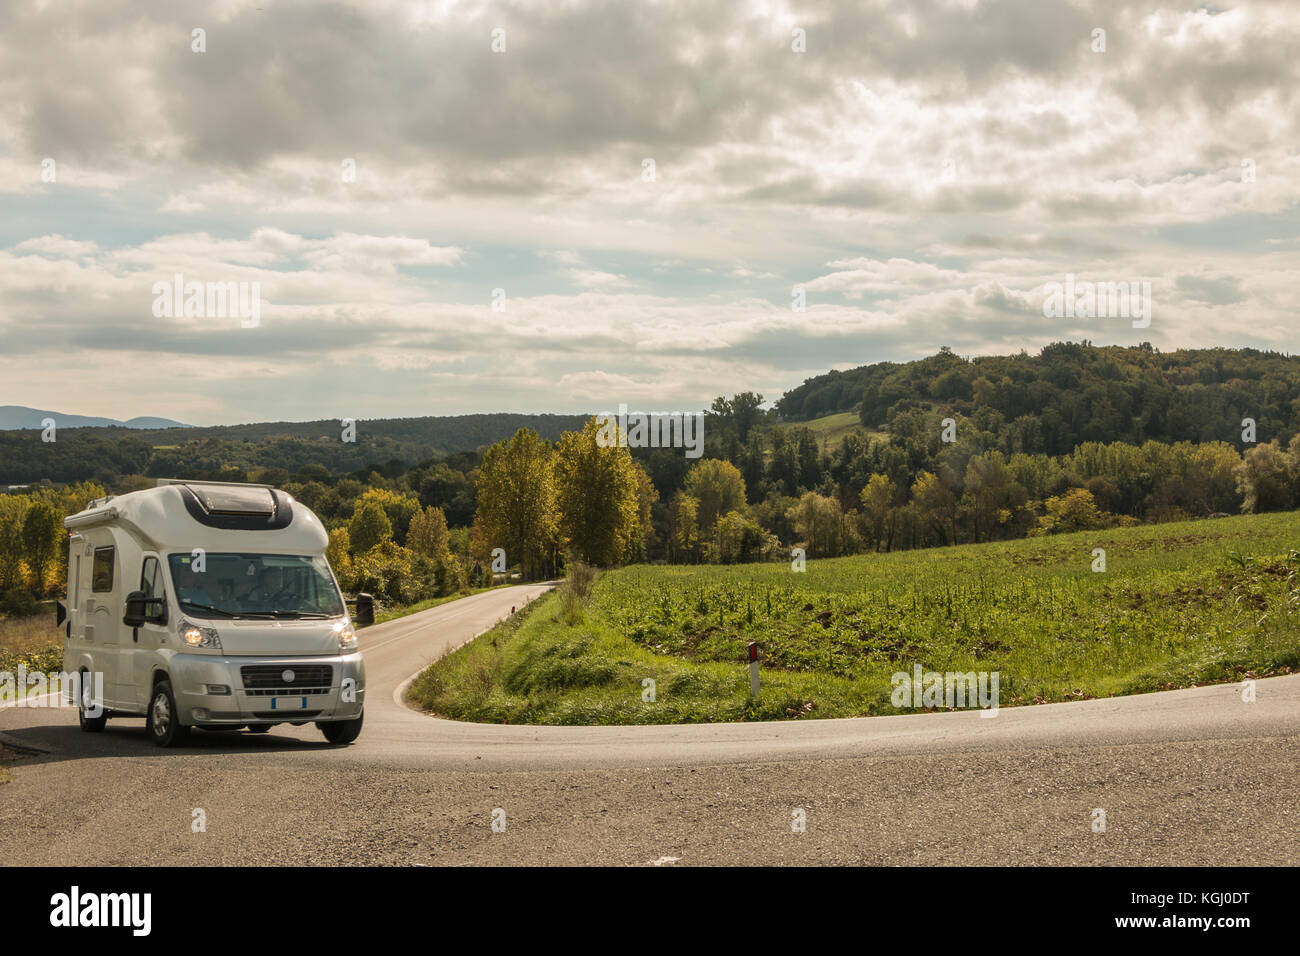 A campervan travel trip to Tuscany Italy Driving Camping road Florence Siena Lucca - Stock Image